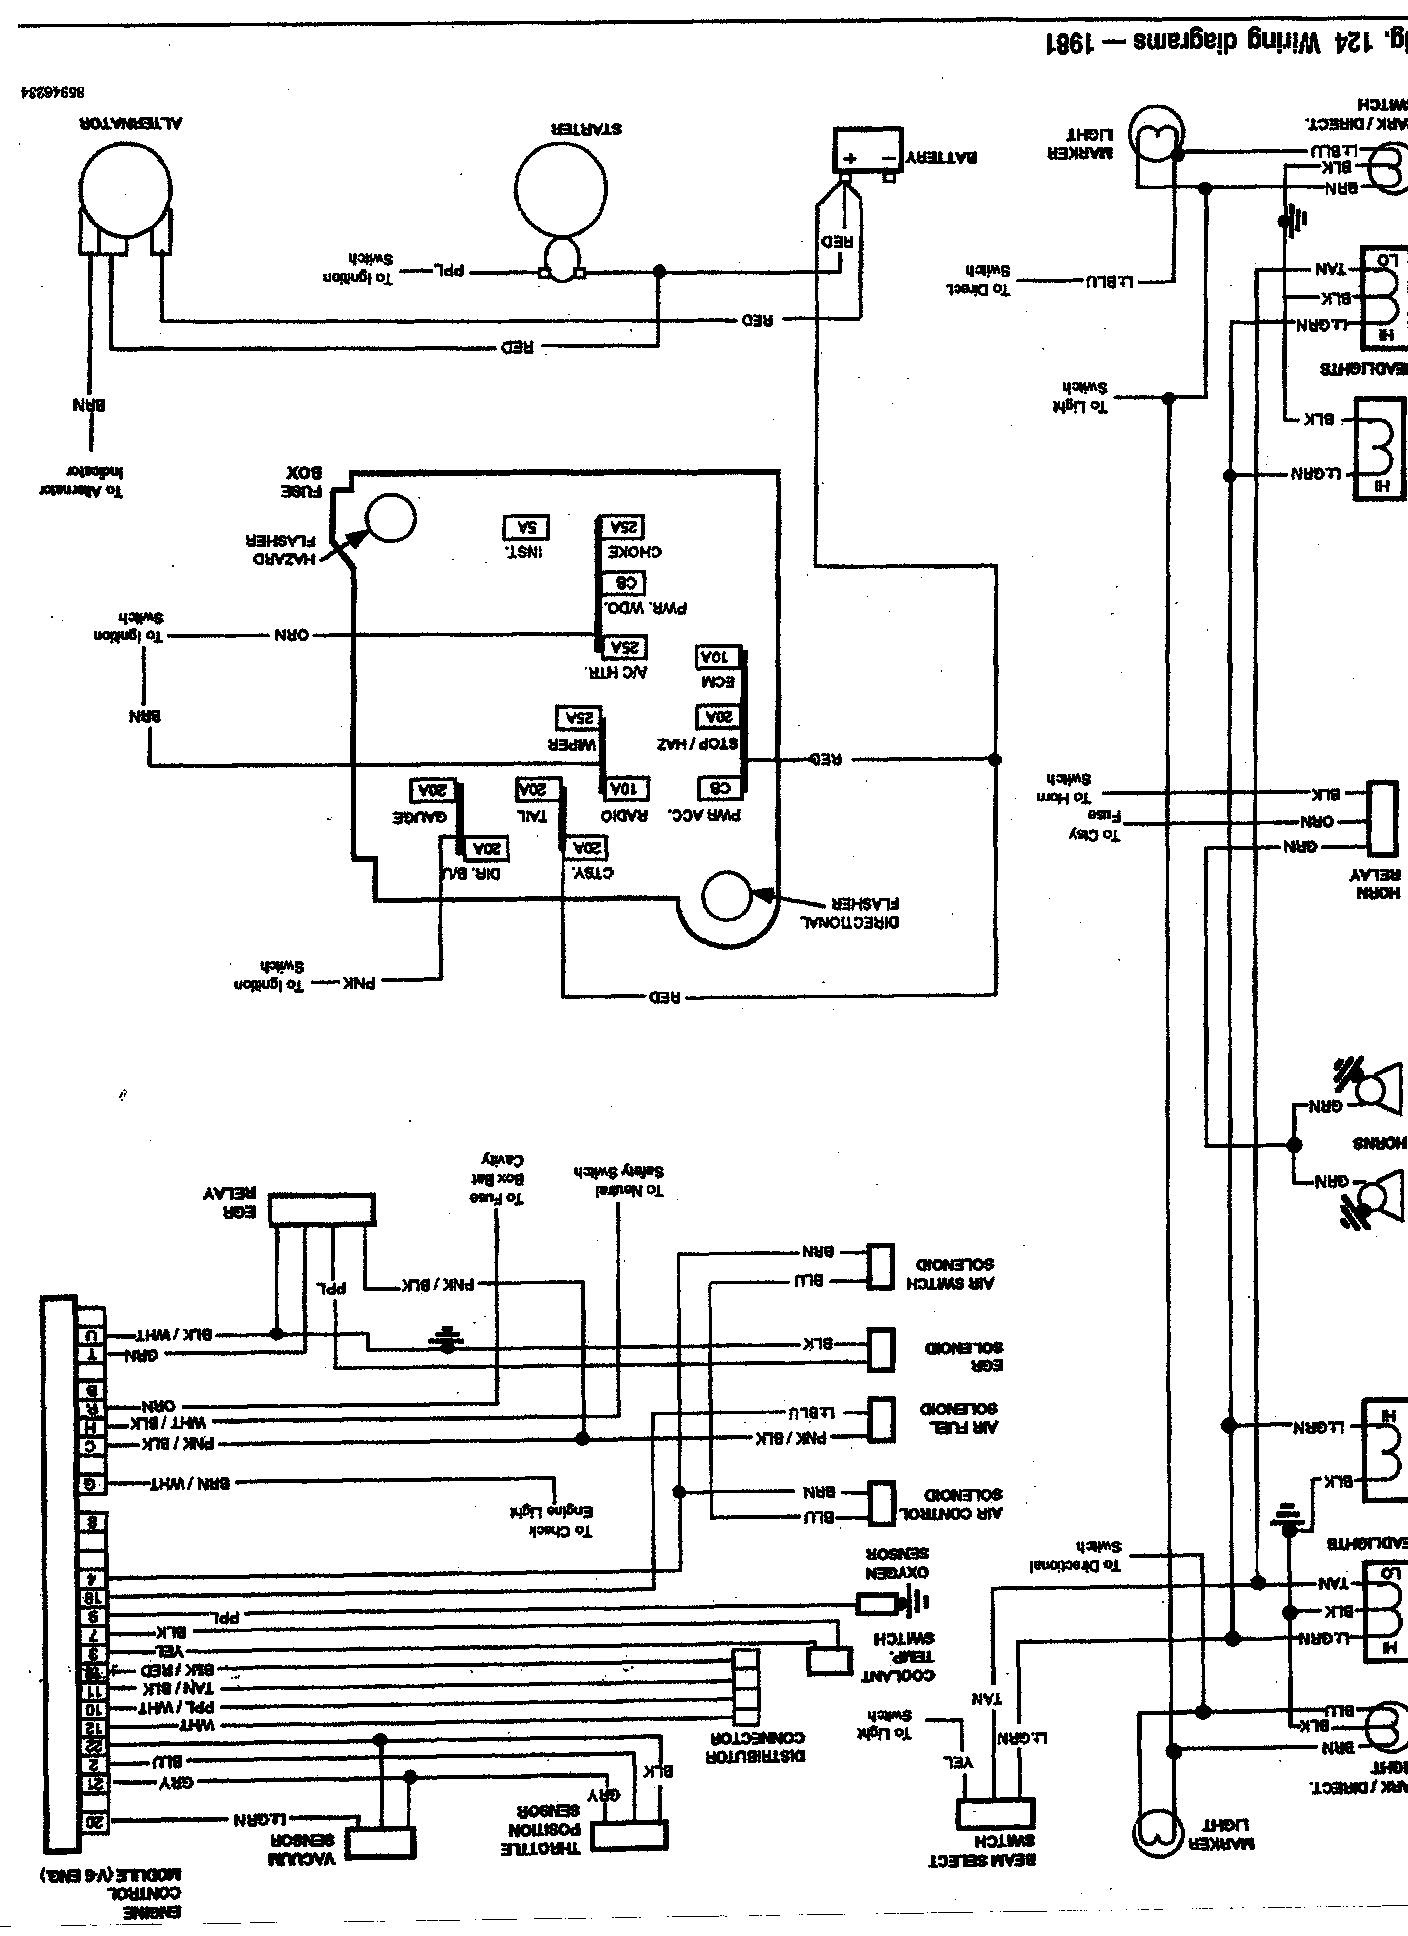 1987 El Camino Radio Wiring Diagram Schematic